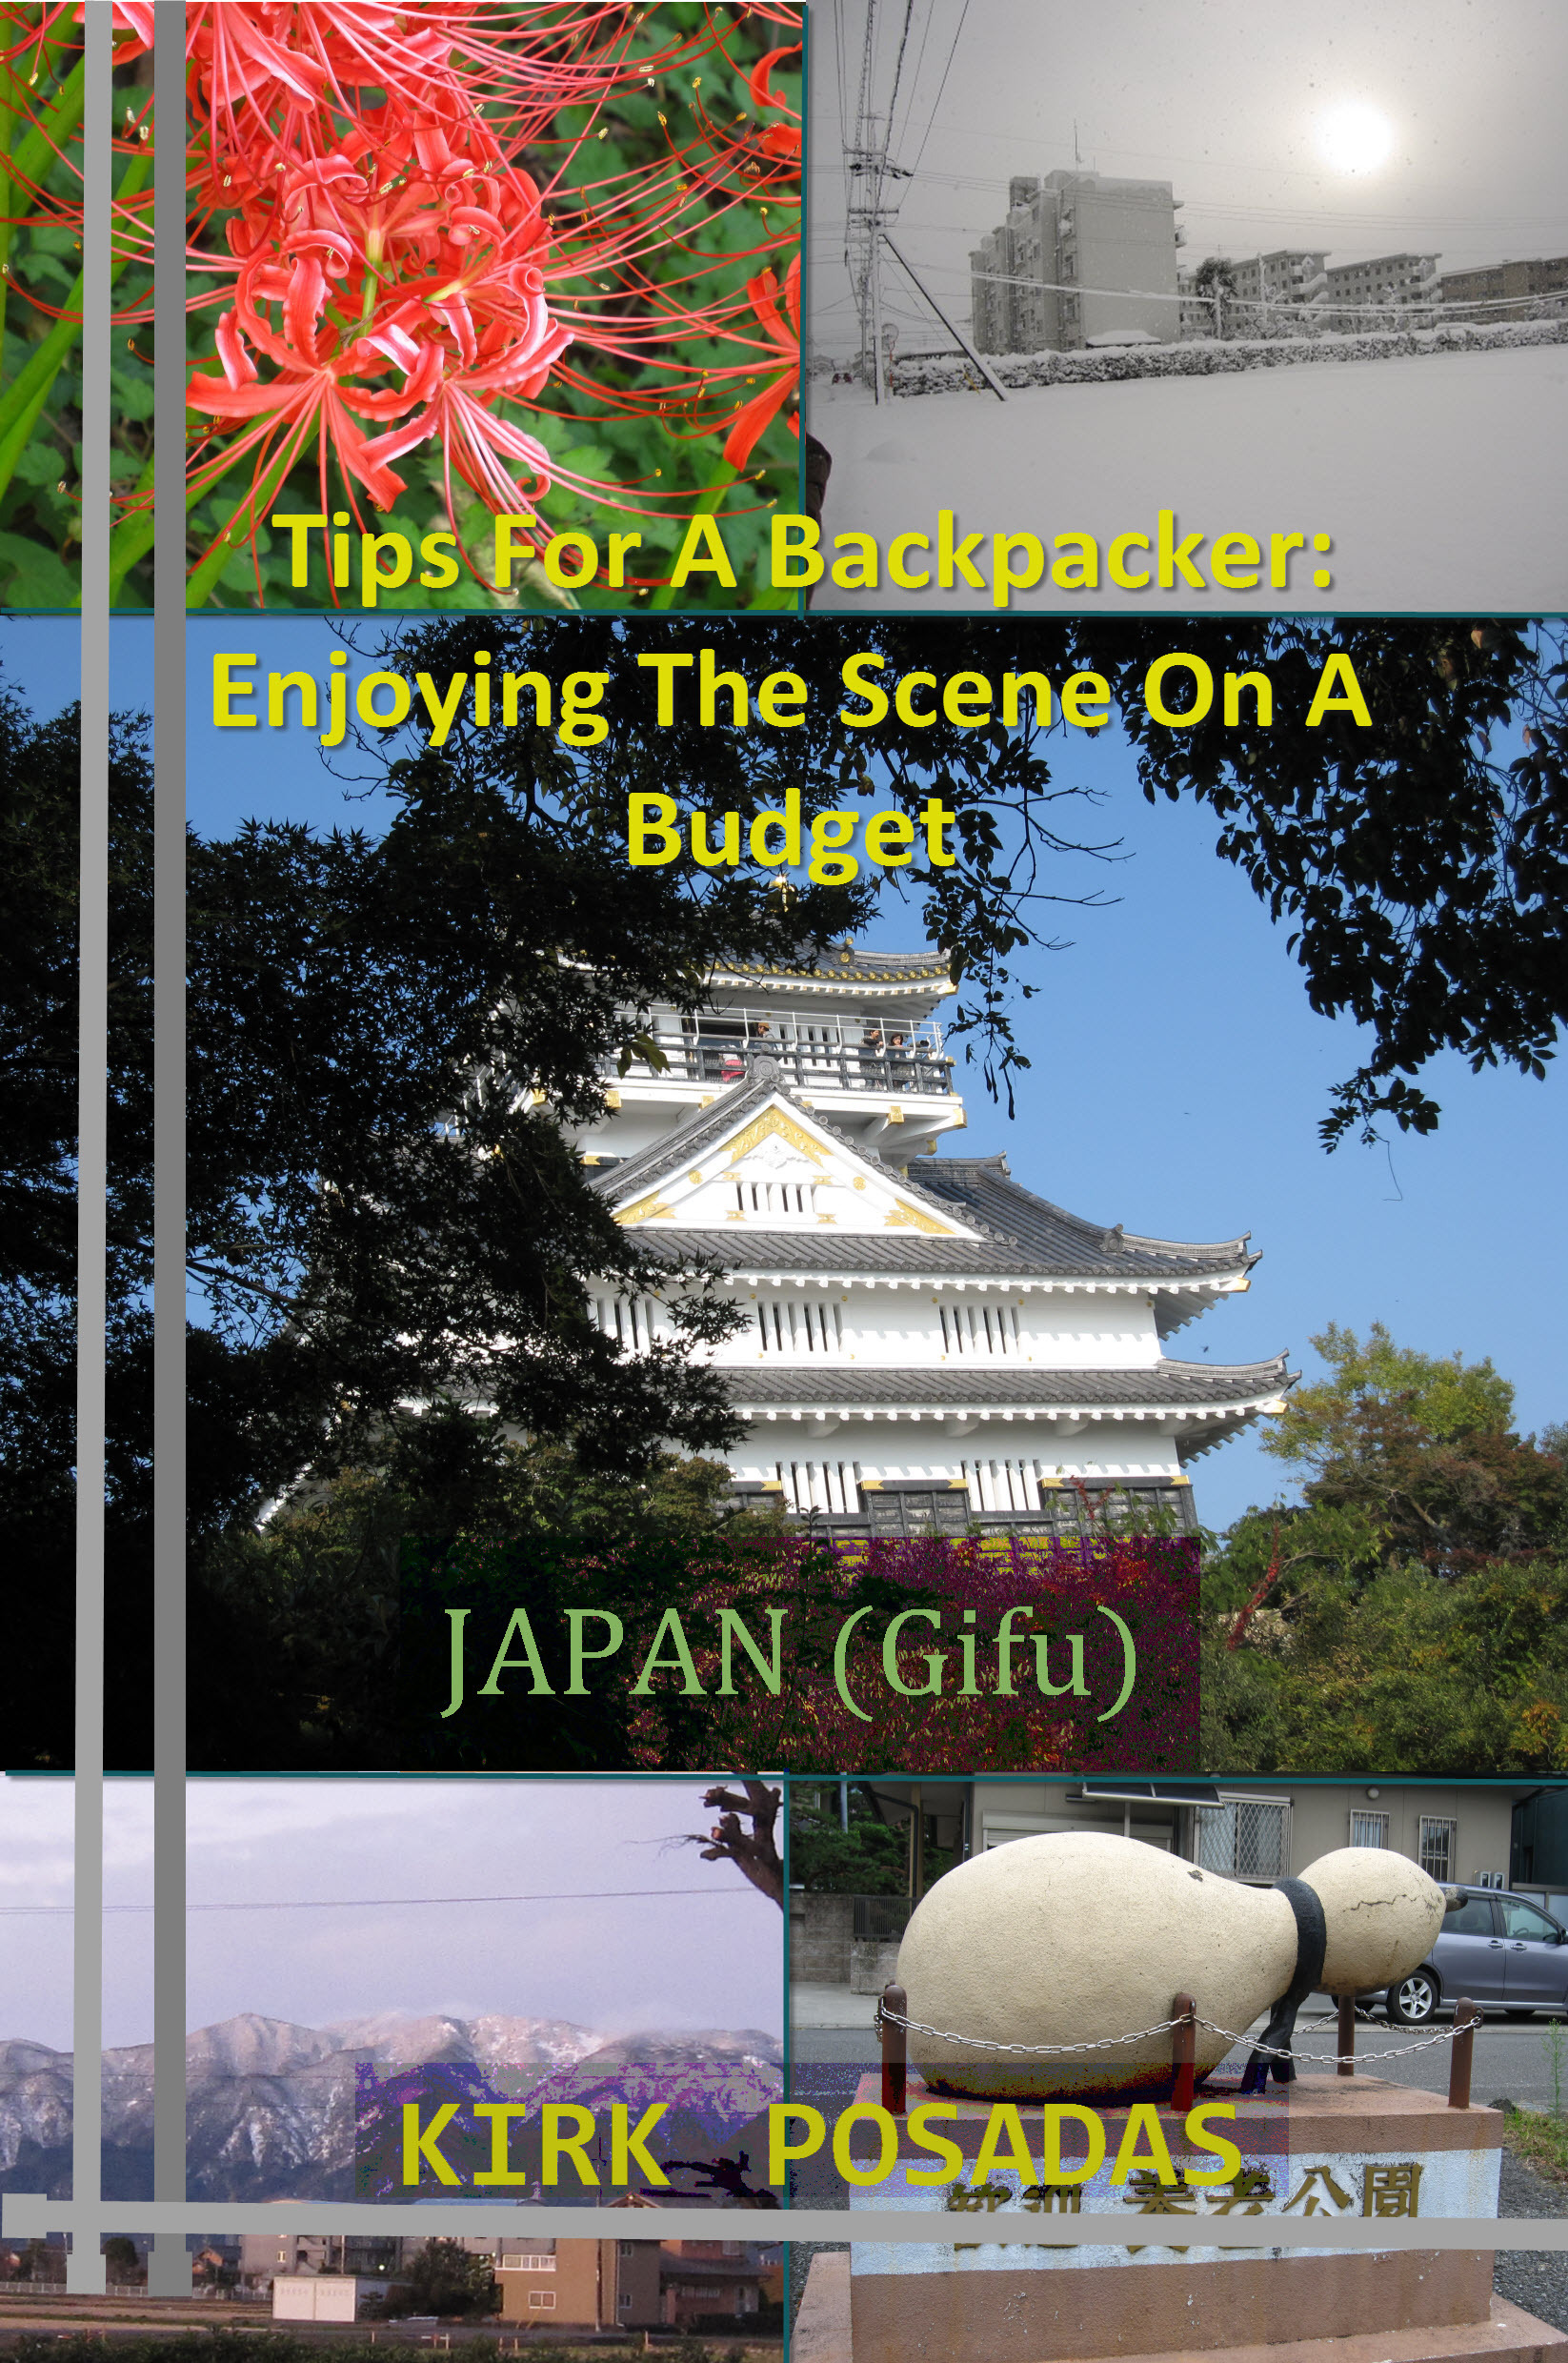 Tips For A Backpacker: Enjoying The Scene On A Budget Japan (Gifu)